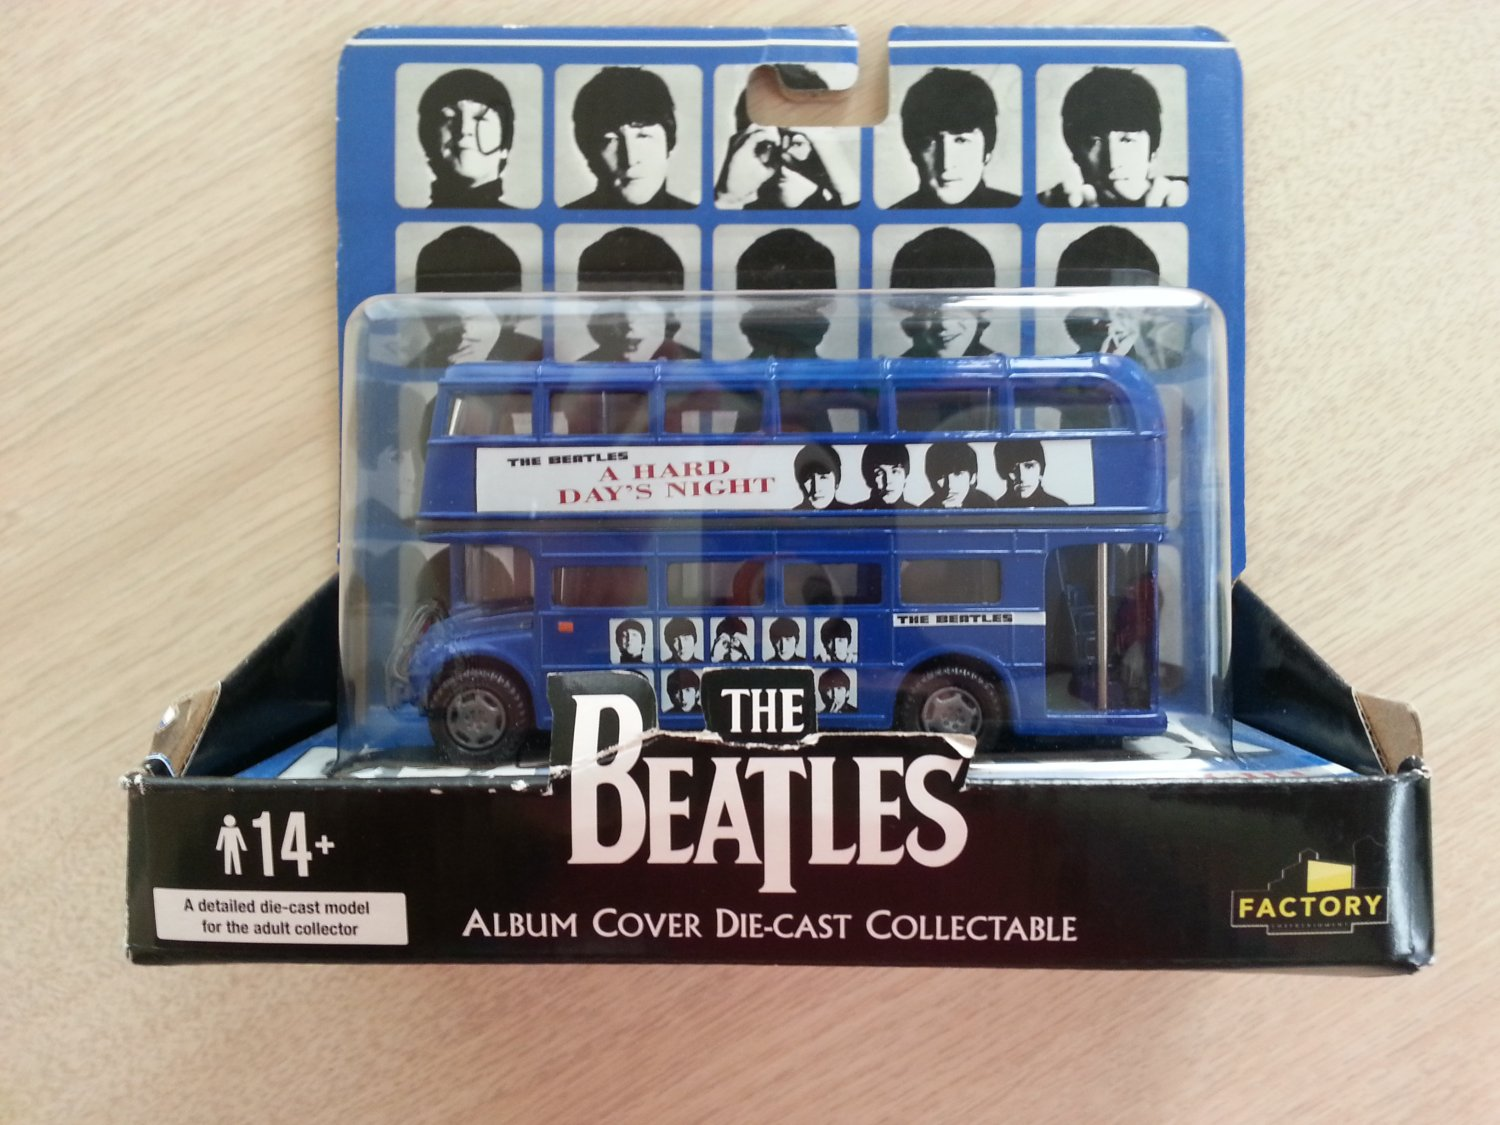 The Beatles A Hard Days Night Famous Covers Collectible Die-Cast Bus by Factory Entertainment!